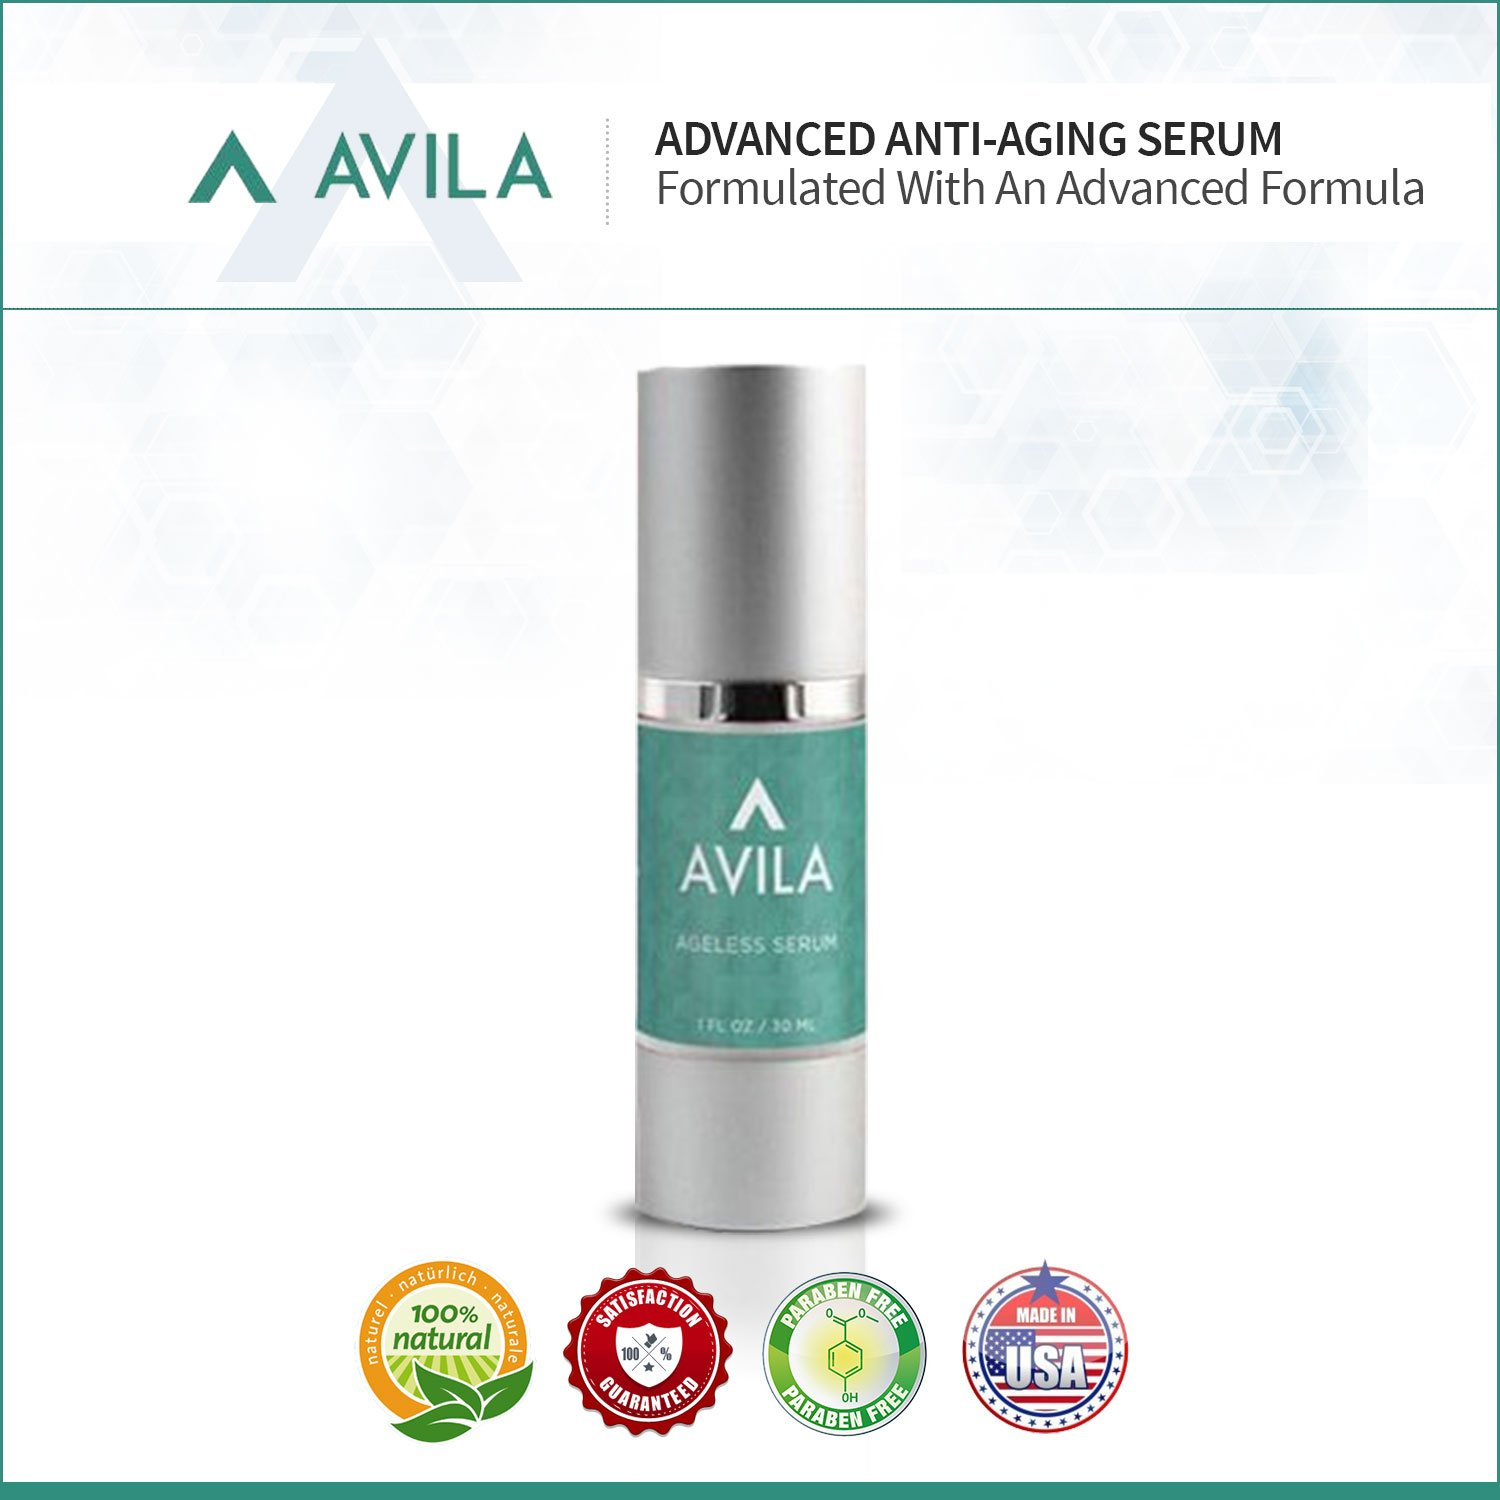 Avila Skincare Ageless Serum- Best Selling Serum Formula To Boost Collagen and Elastin, Deeply Hydrate Skin and Diminish Fine Lines and Wrinkles - Improved Formula